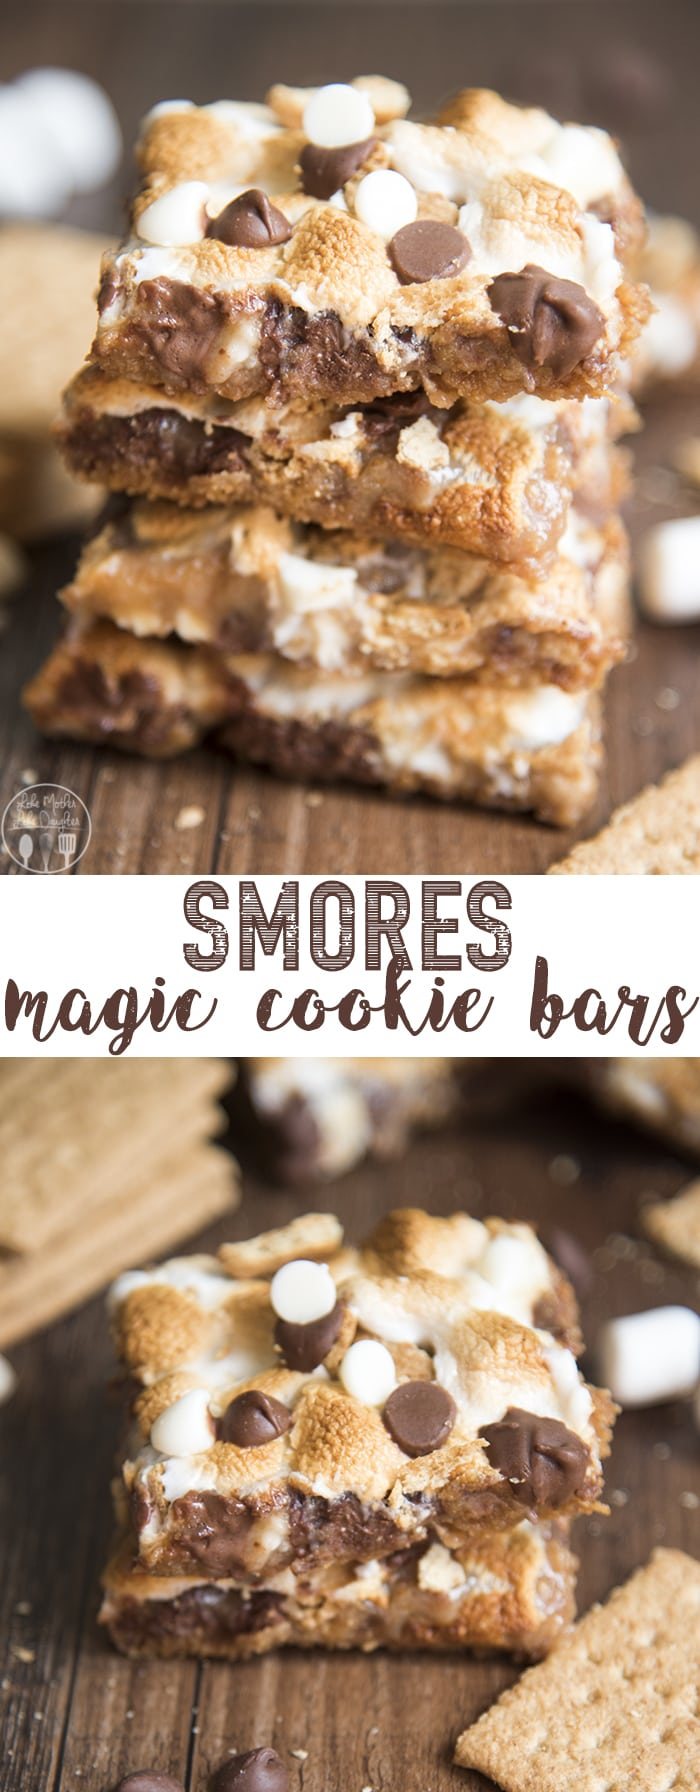 S'mores Magic Cookie Bars are gooey magic bars with a s'mores twist. They've got all the flavors of a toasty s'more without the fire!